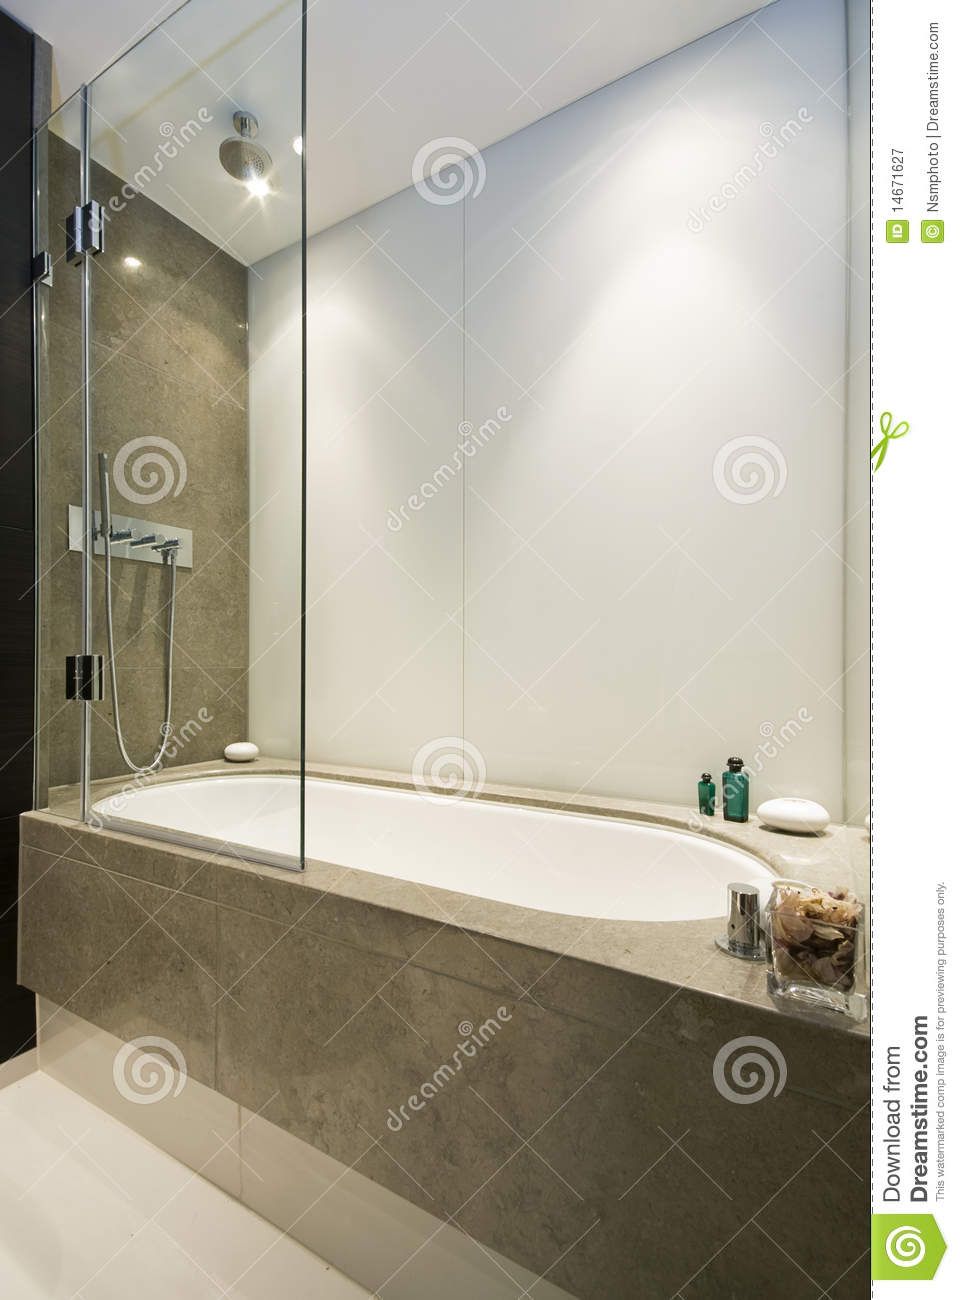 Large luxury bath with shower attachment stock image for Oversized baths